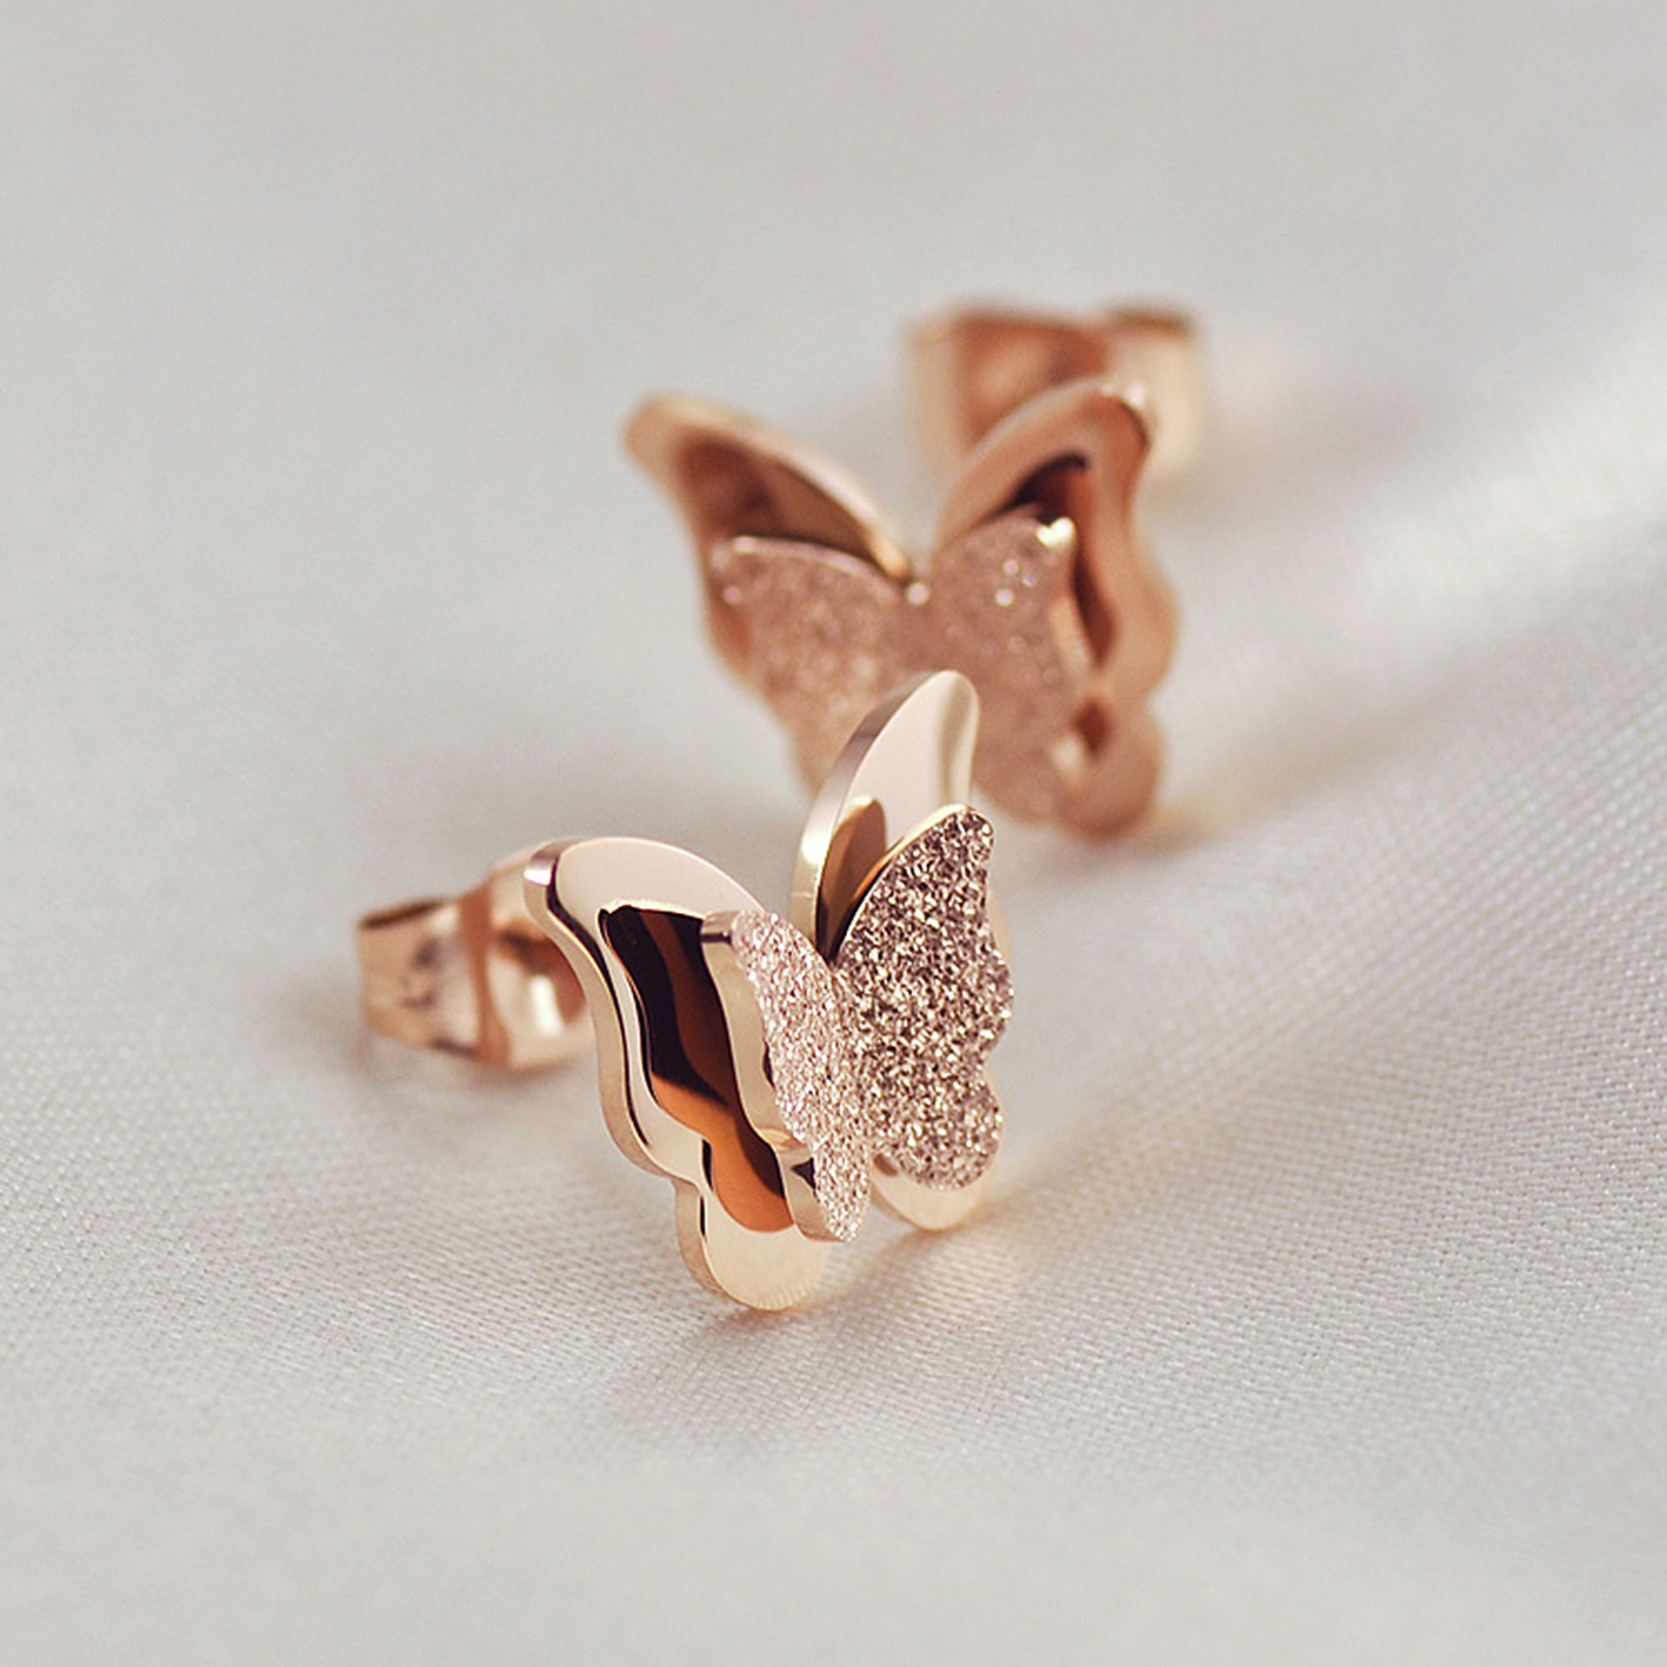 OBSEDE Stainless Steel Earrings For Women Child Rose Gold Color ...